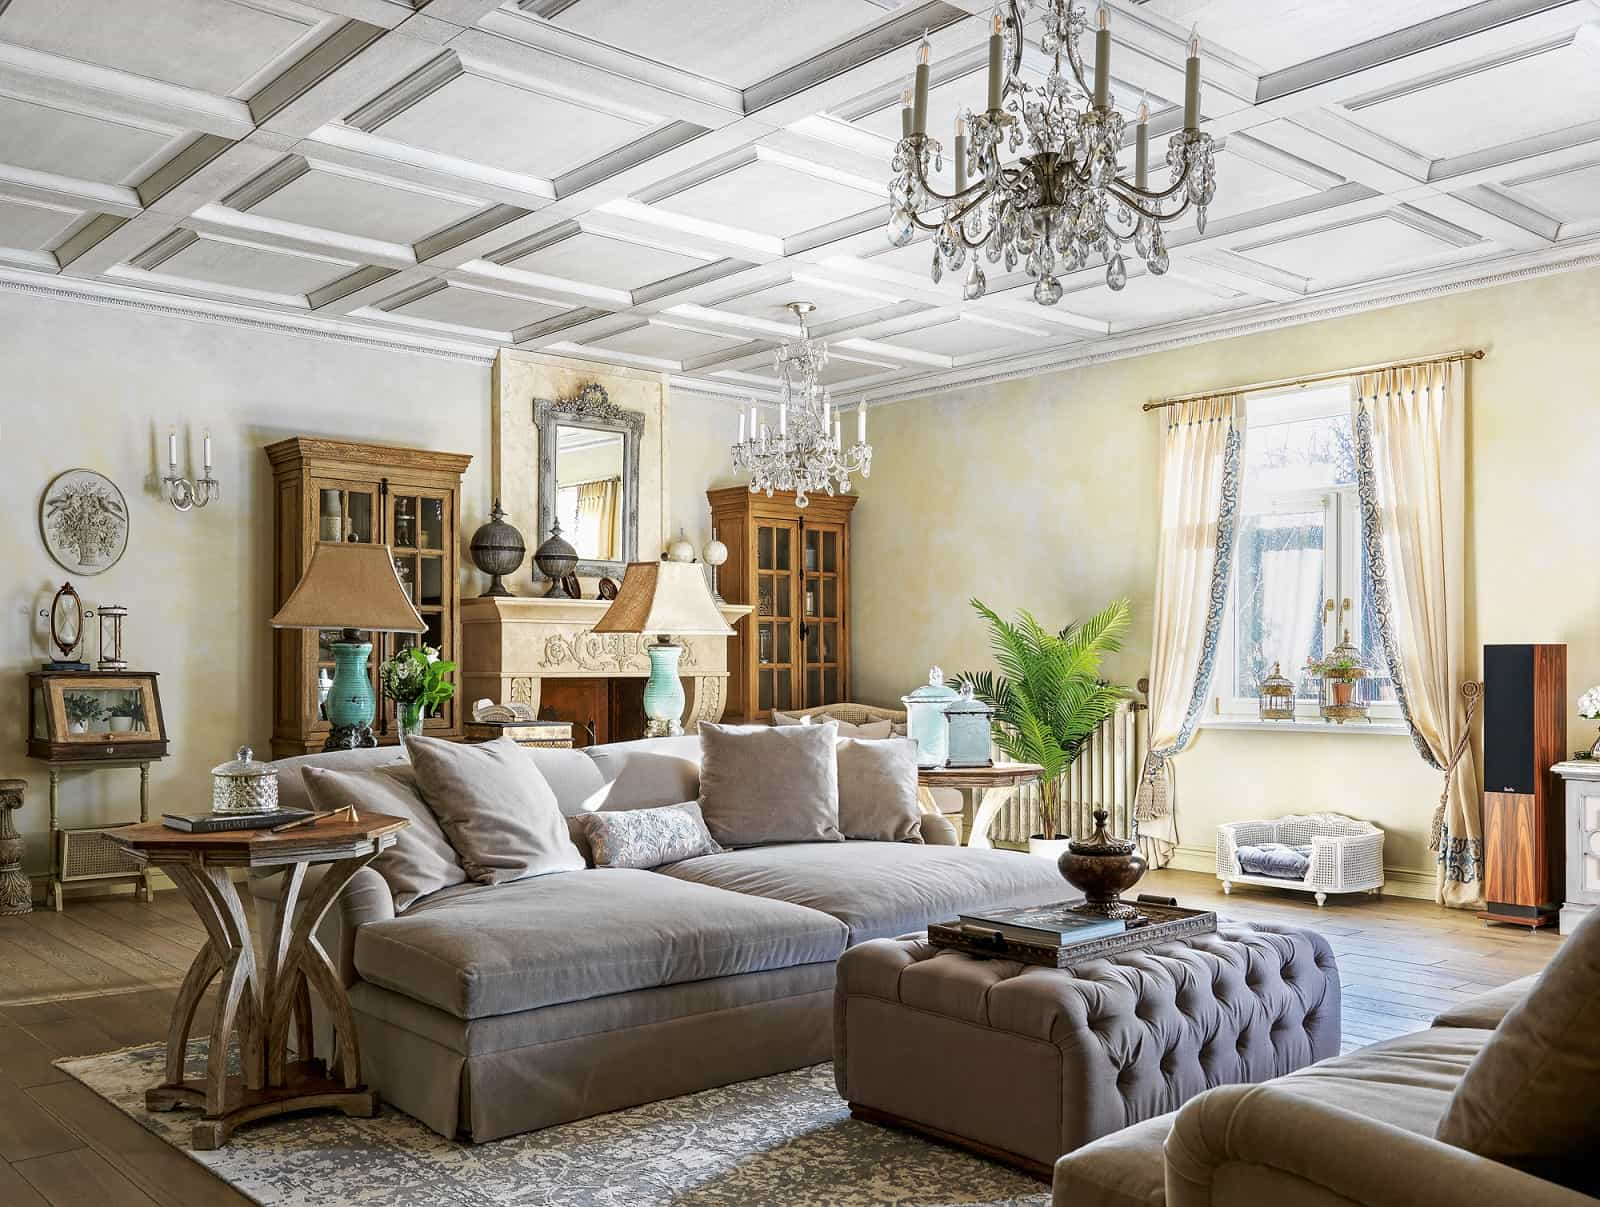 10 Tips for Cleaning a House You Have Inherited. Great light classic interior with quilted coffee table and large sofas for relaxation